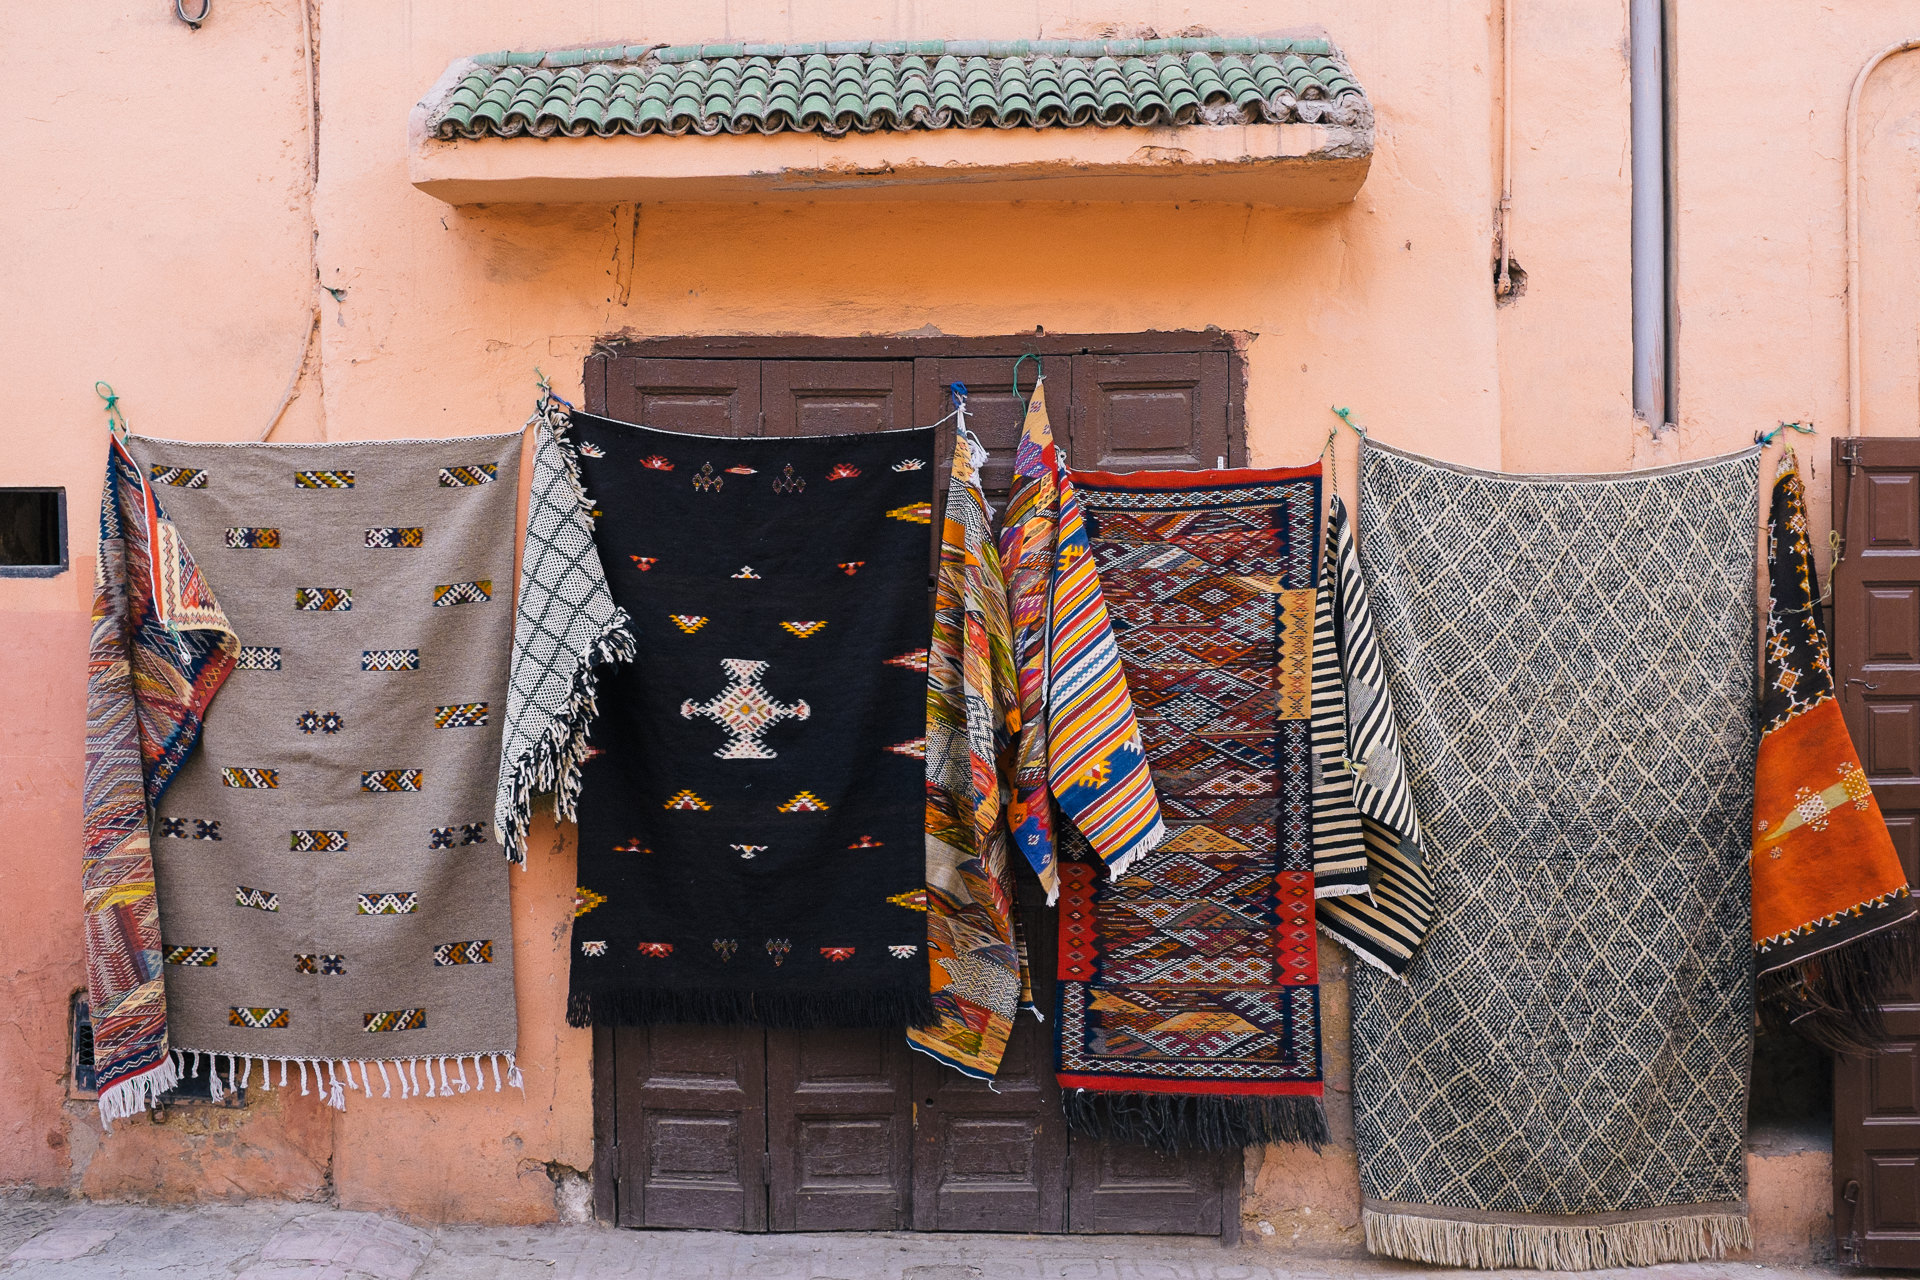 Rugs for sale in Marrakesh